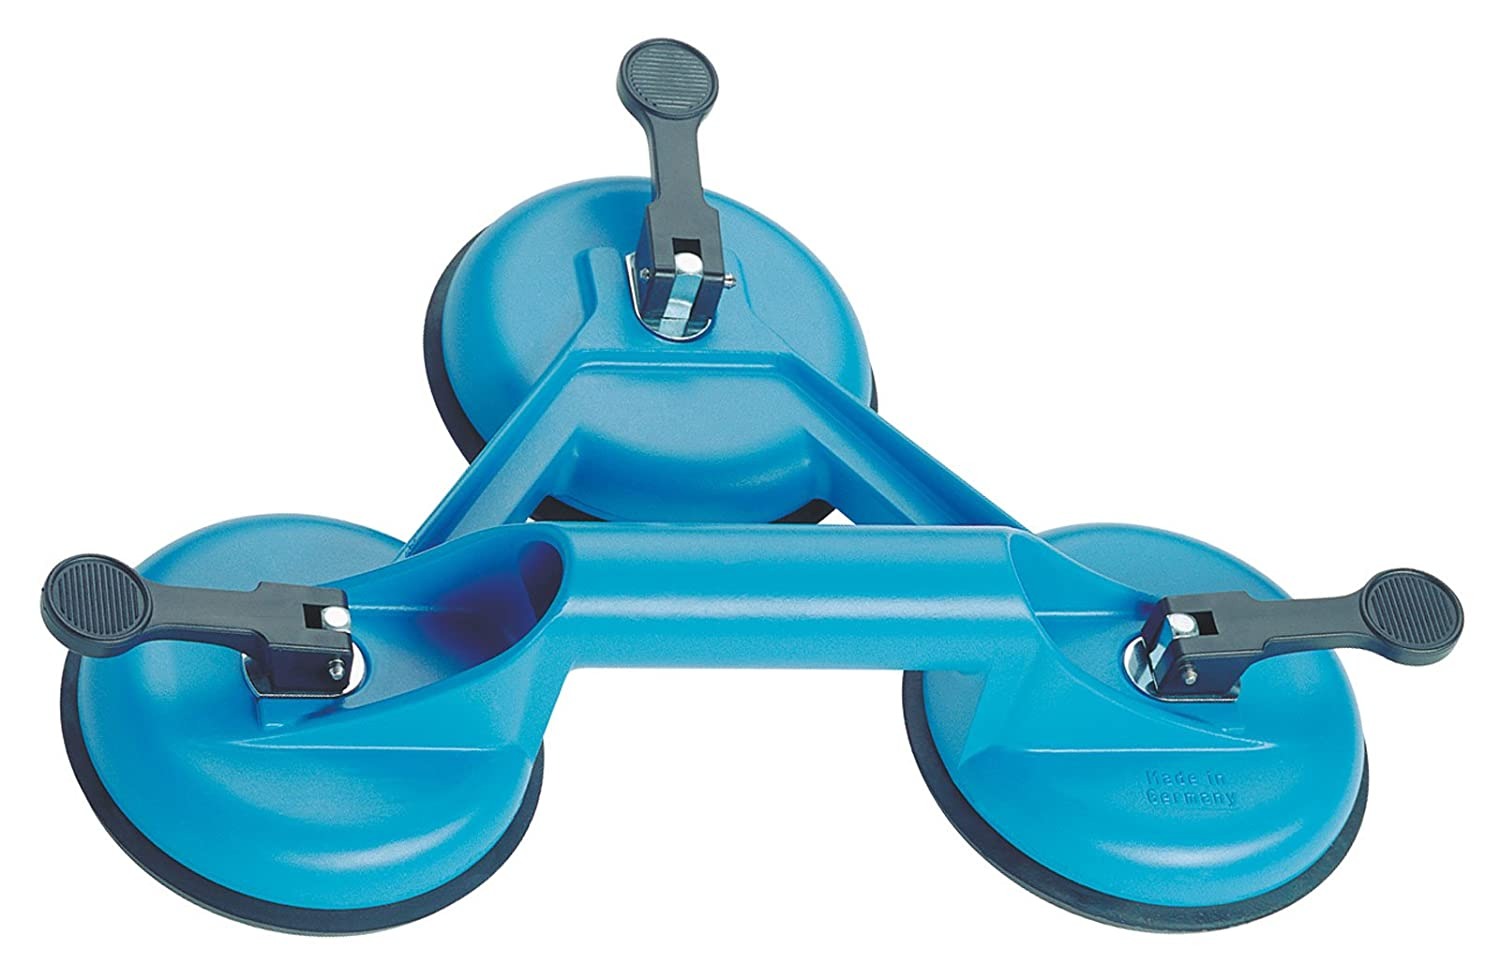 GEDORE Baltimore Mall 121-3 Suction Cup Lifter with d 120 mm [Alternative dealer] Cups 3